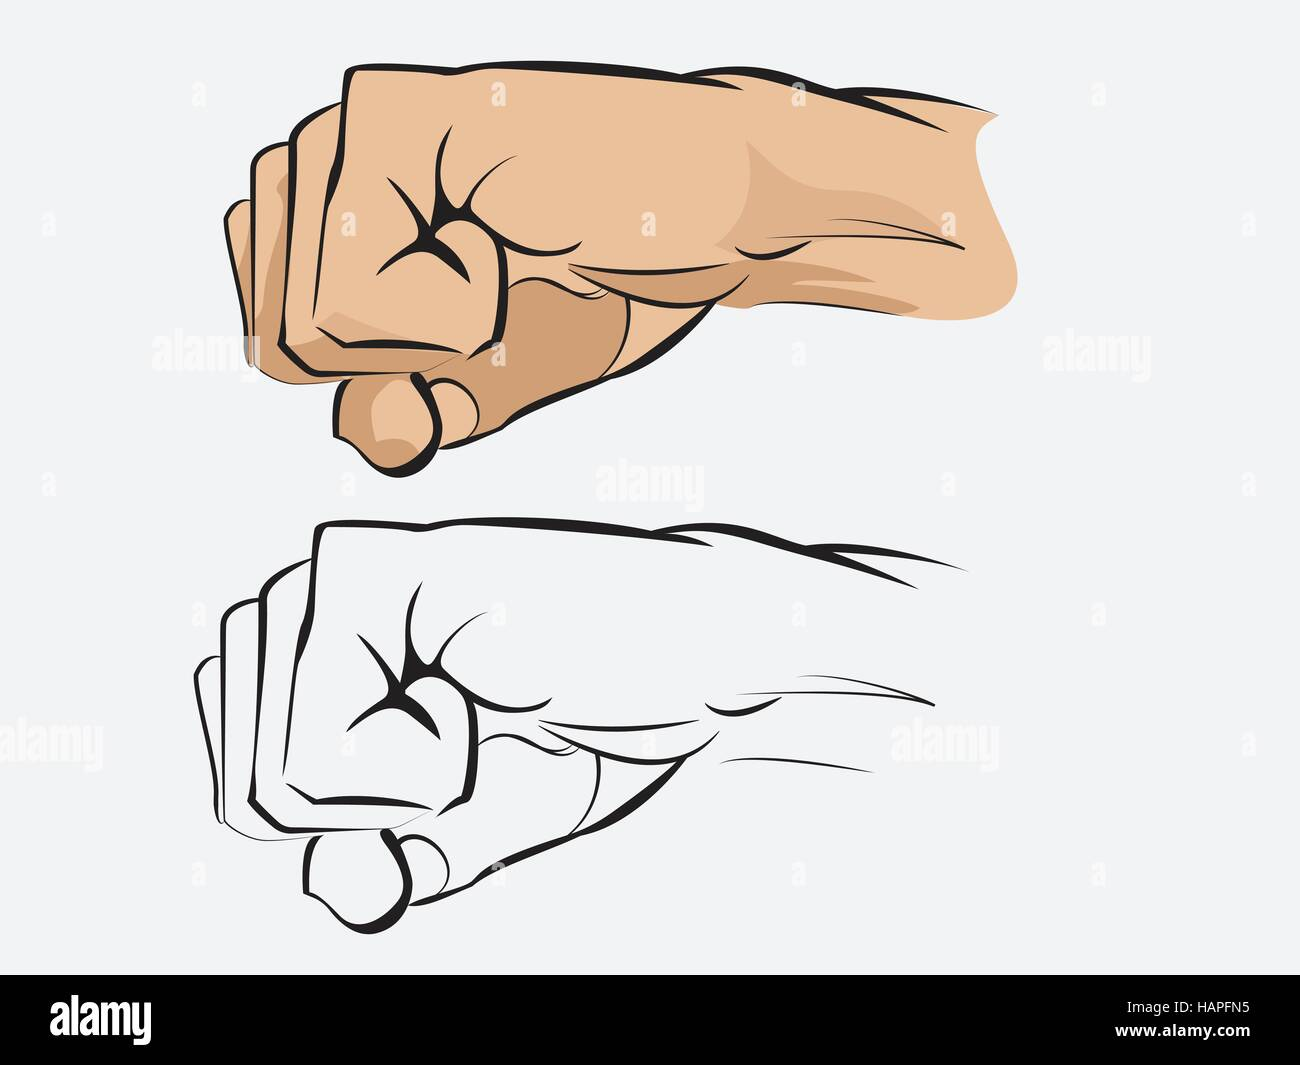 Vector illustration of a human fist colored and line art - Stock Vector